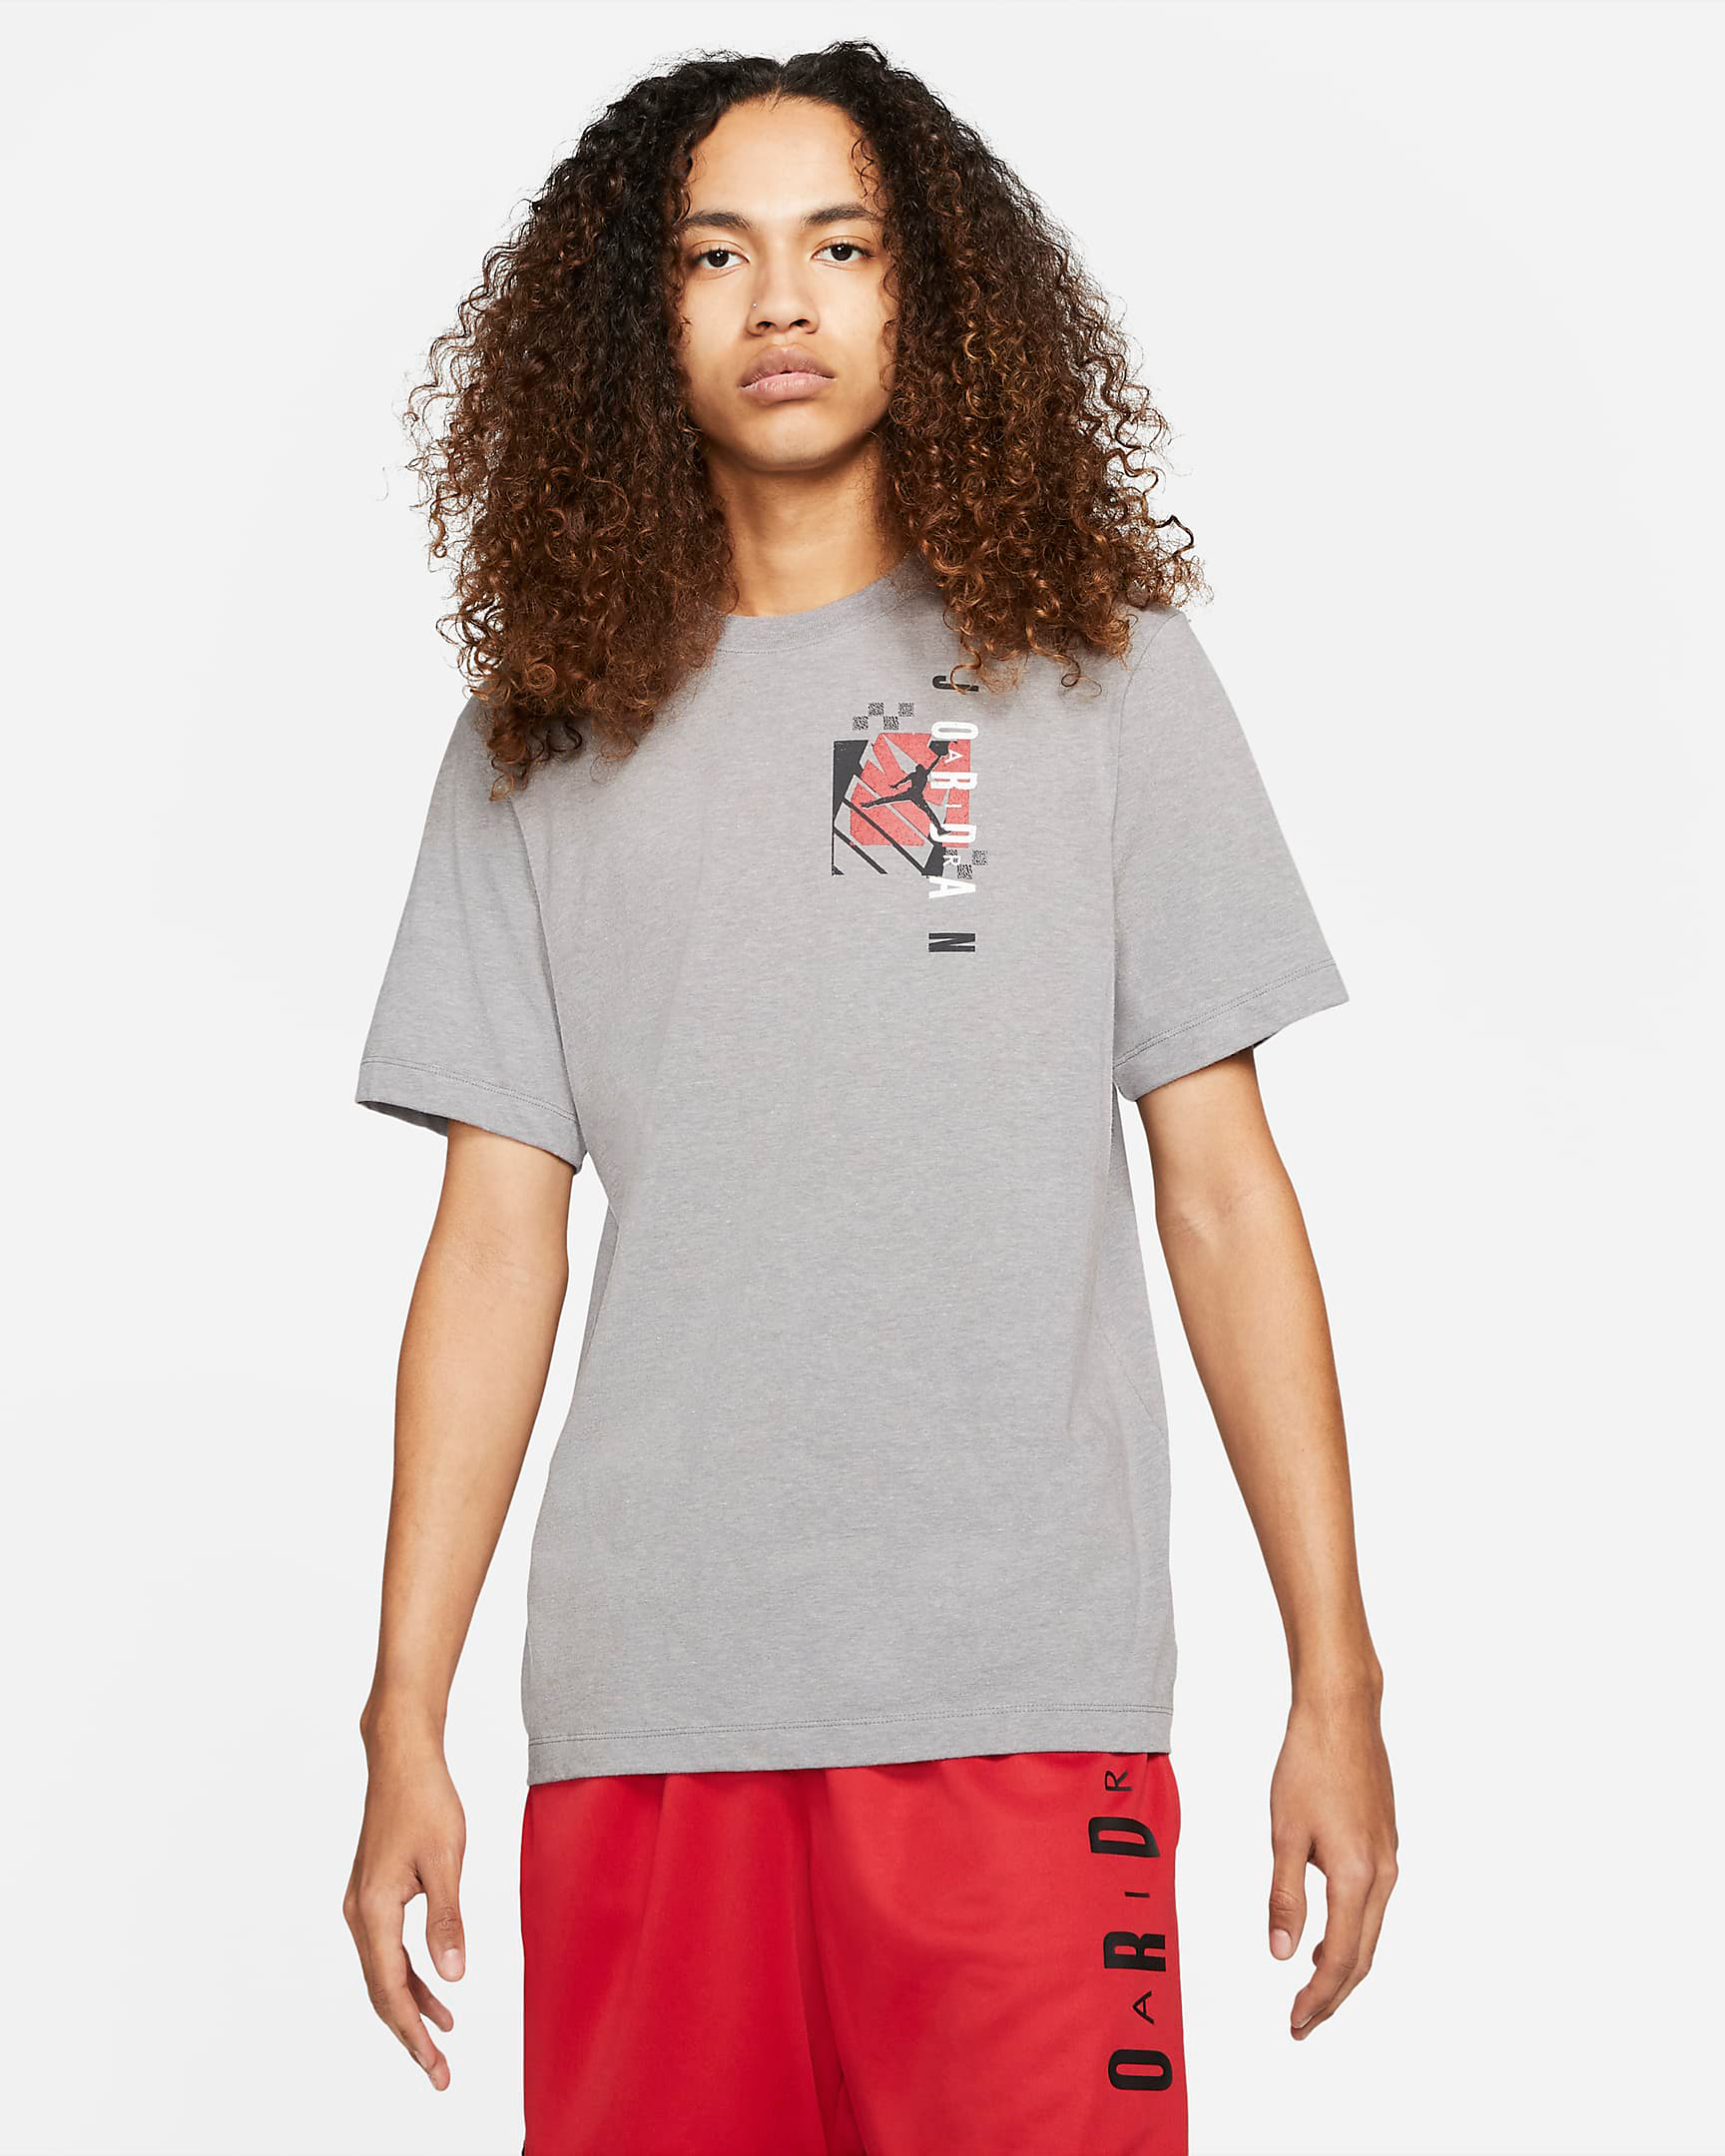 jordan-air-futura-shirt-grey-black-red-summer-2021-3